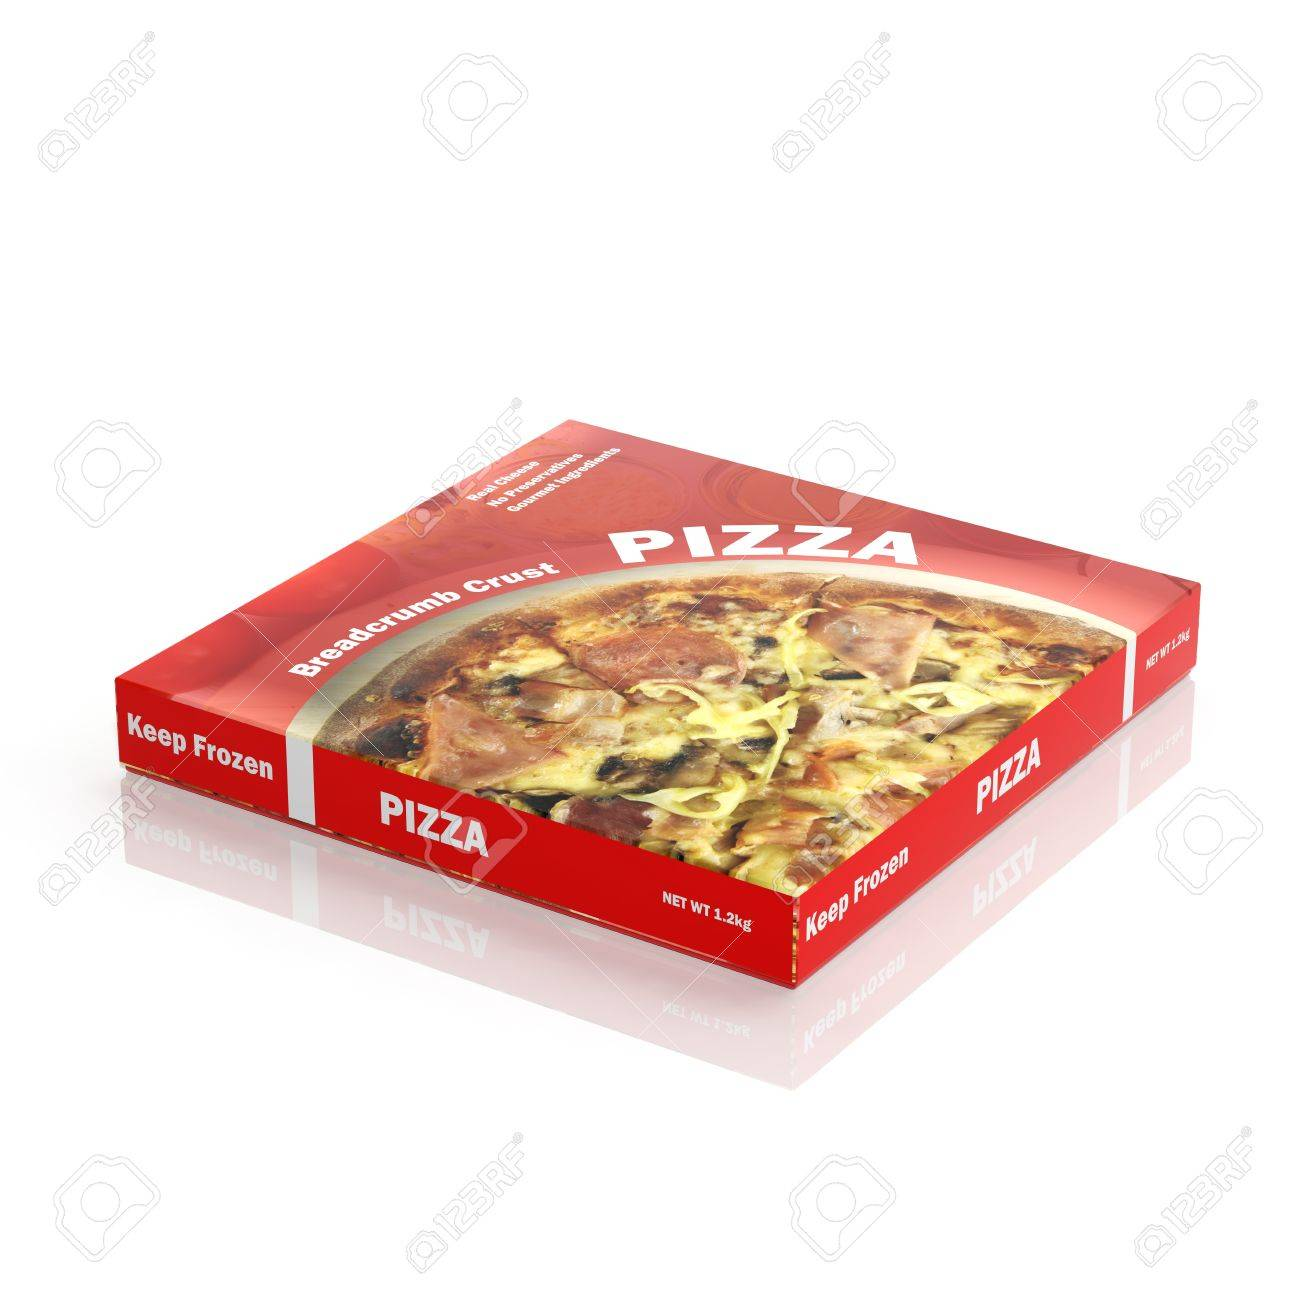 3D Pizza paper package isolated on white Stock Photo - 33504746